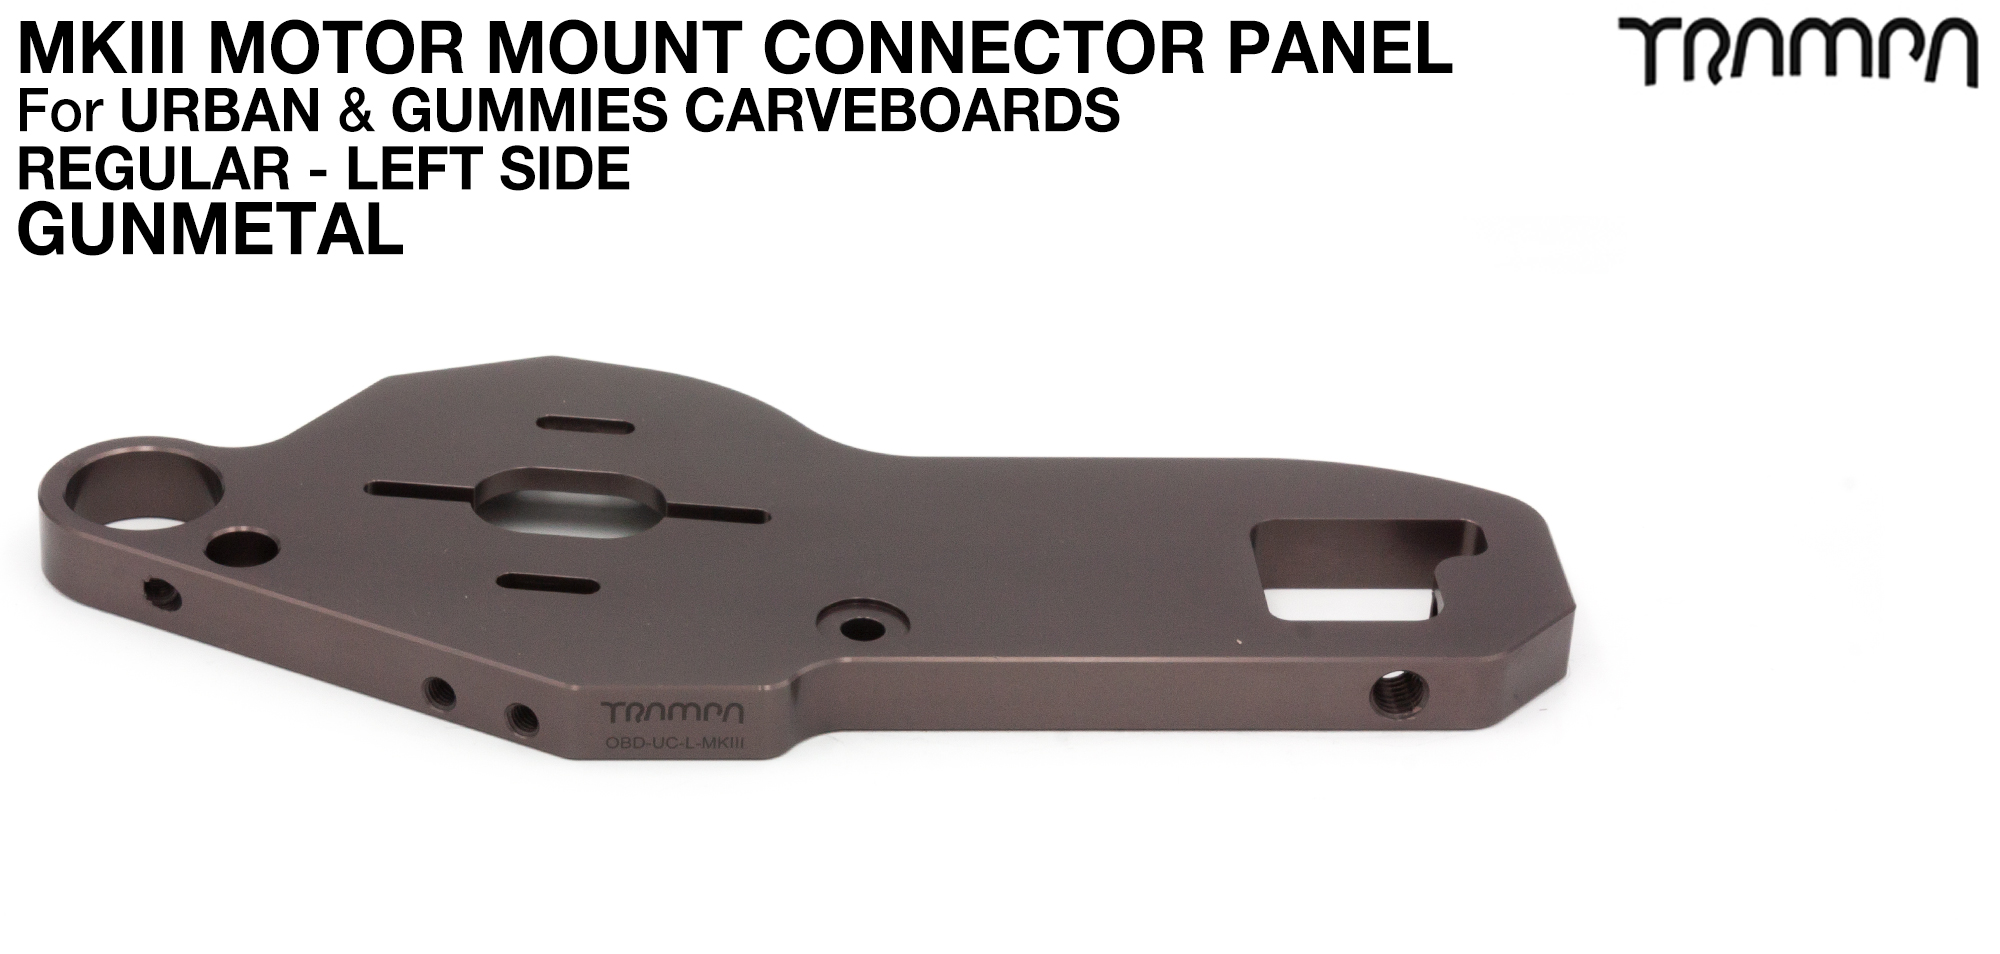 URBAN CARVE Motor Mount - REGULAR GUNMETAL